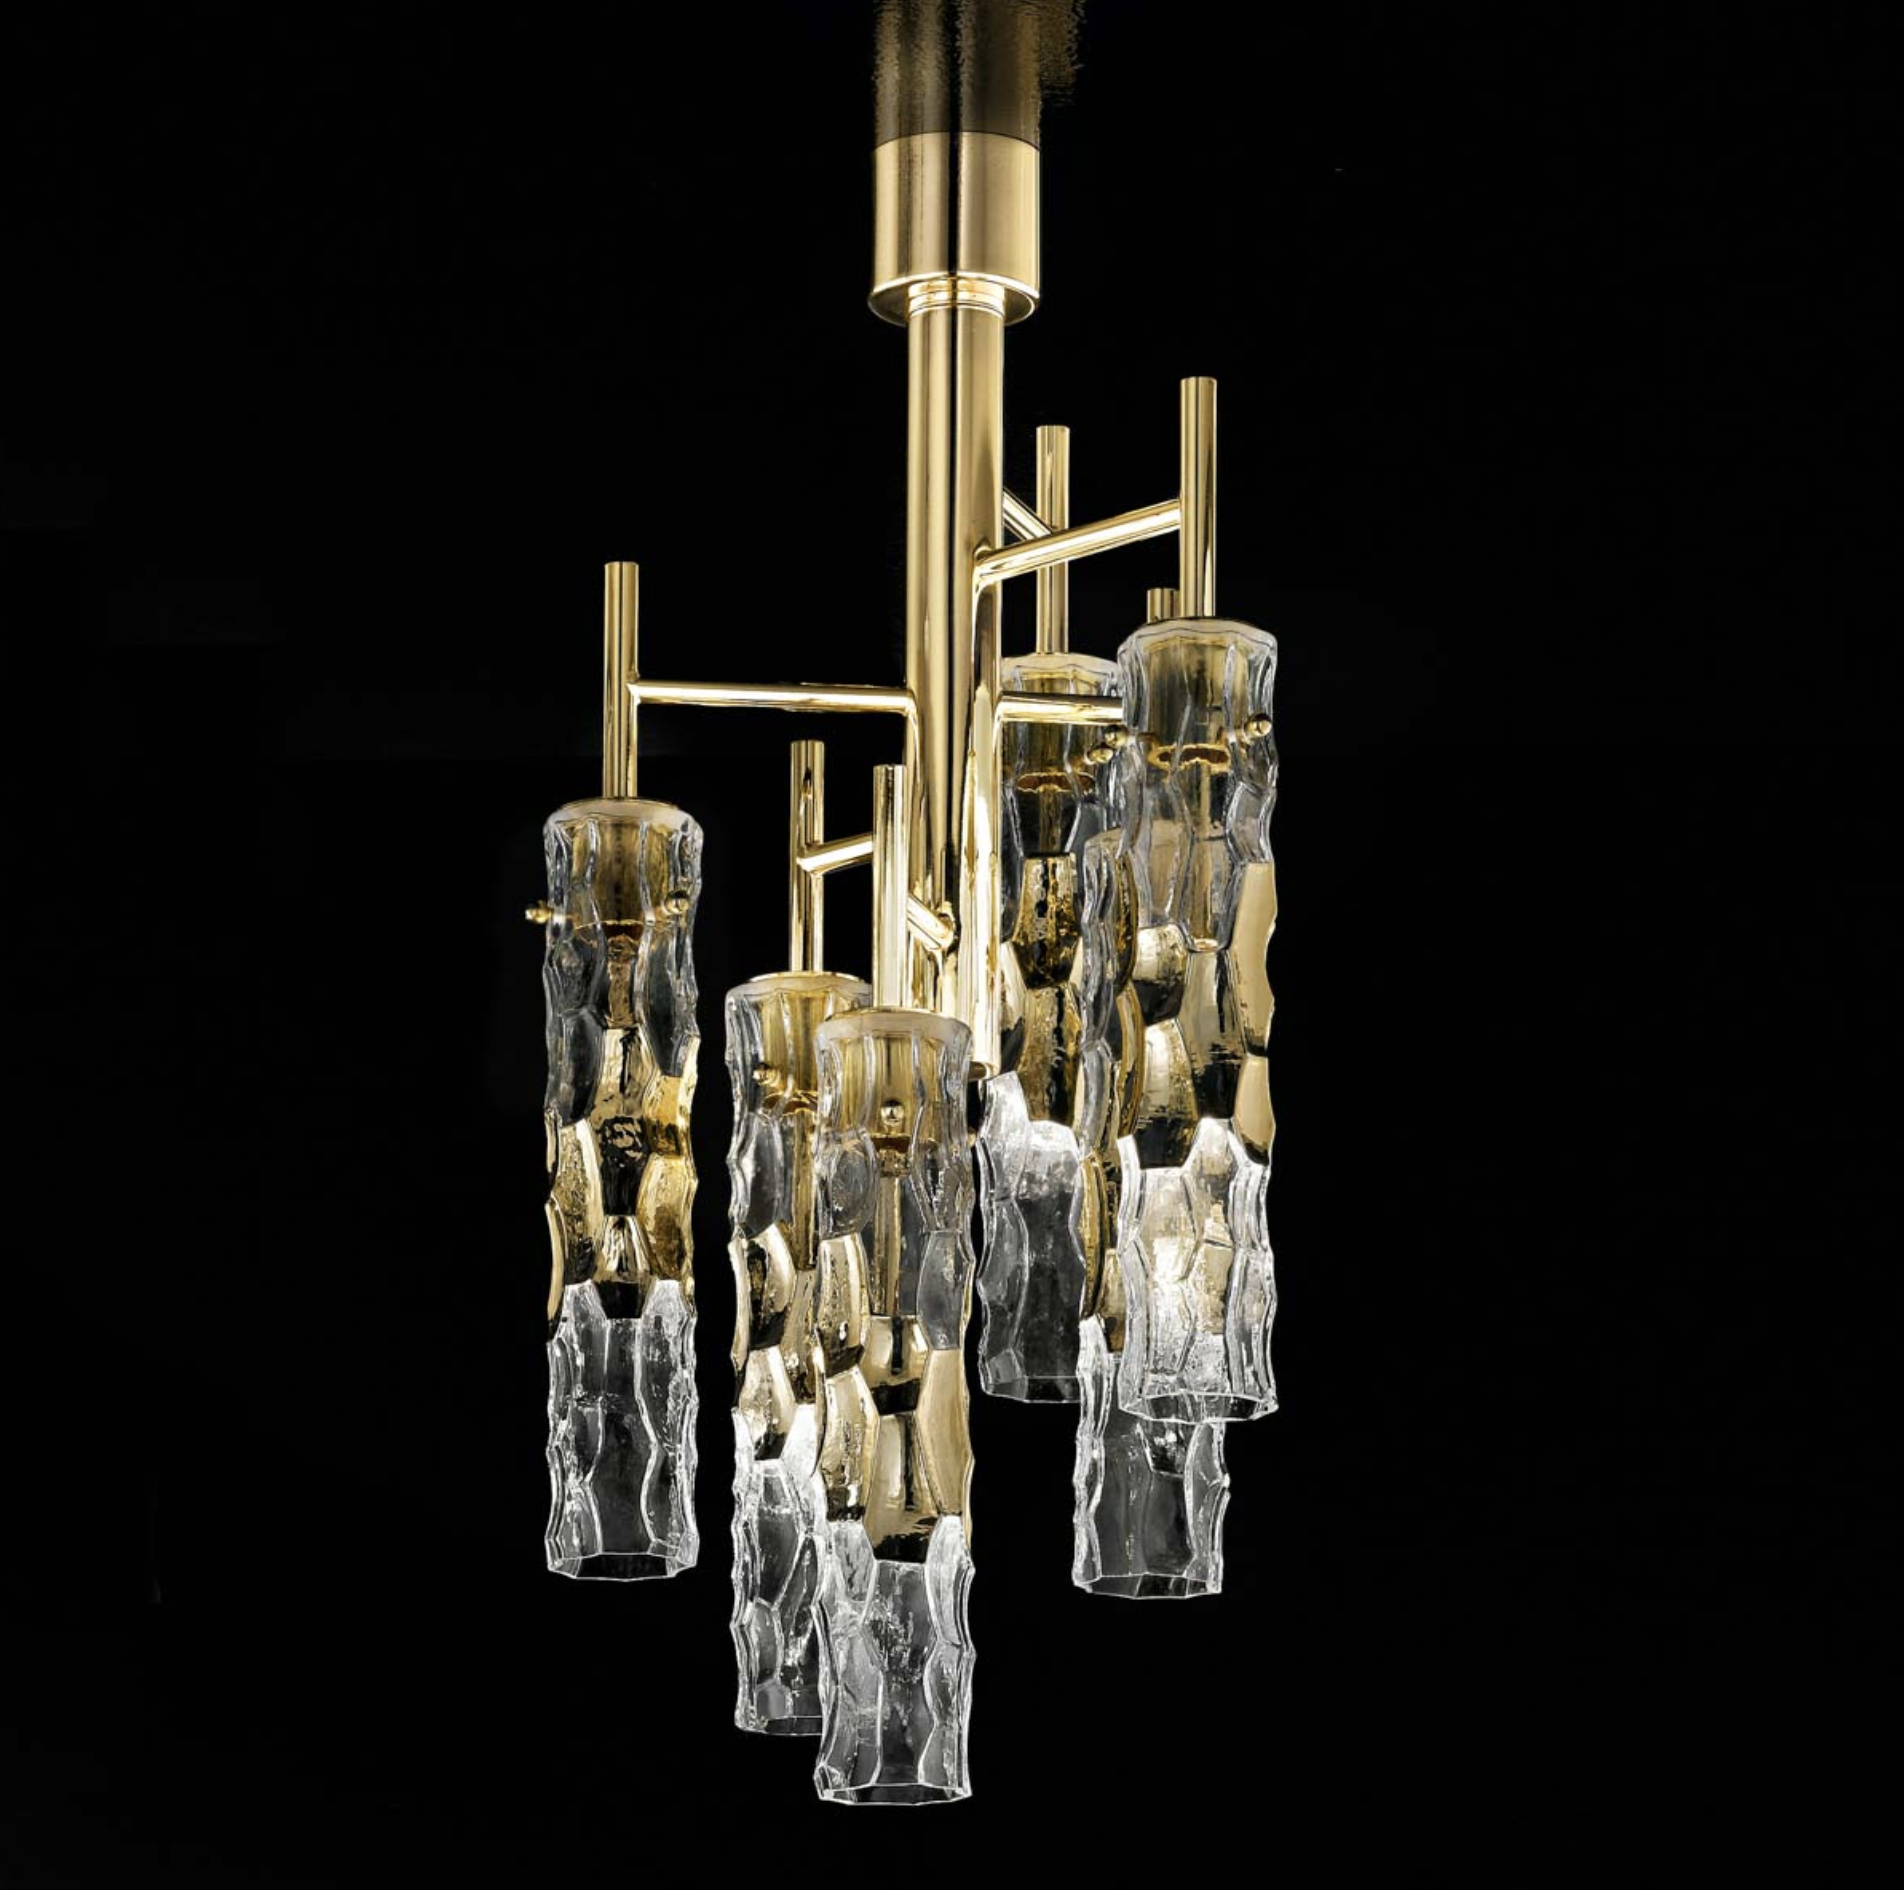 Bamboo Murano Glass 6 Light Ceiling Semi Flush Chandelier - ID 8050